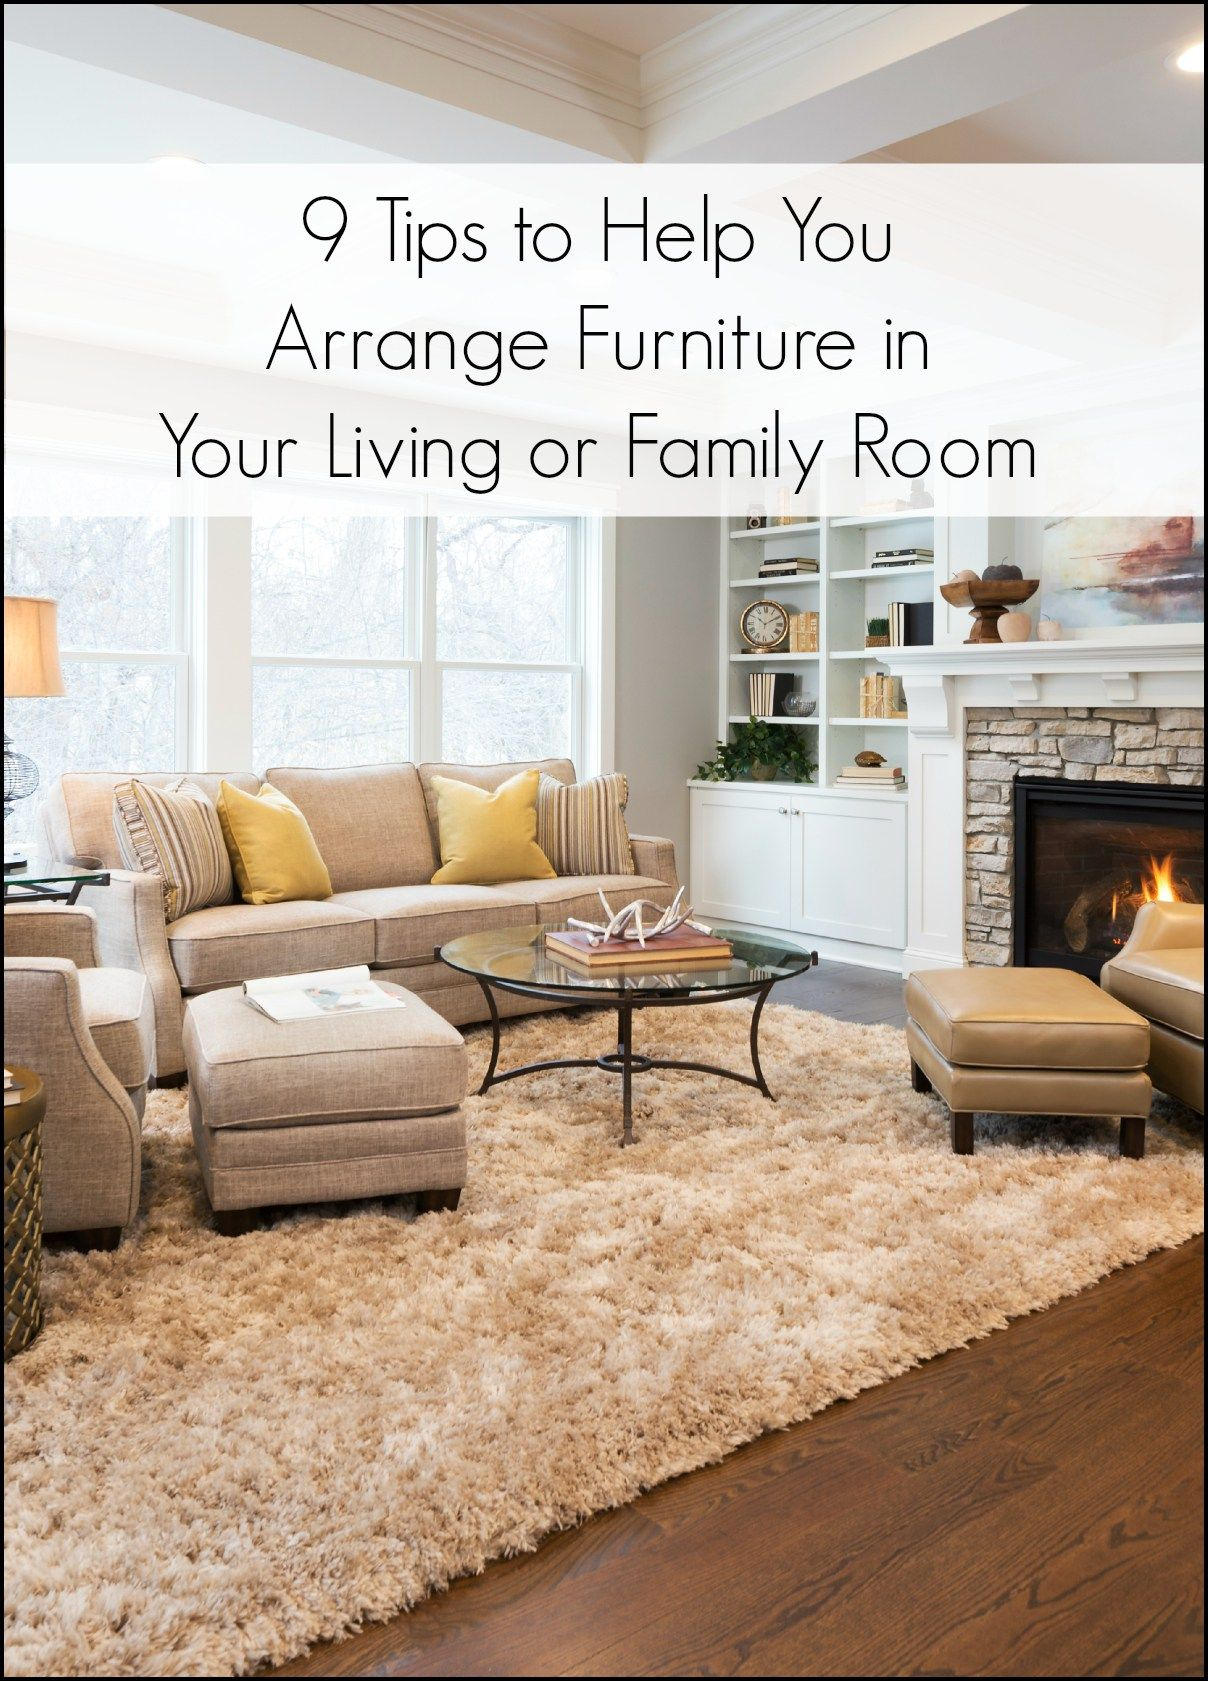 Best 9 Tips For Arranging Furniture In A Living Room Or Family 400 x 300